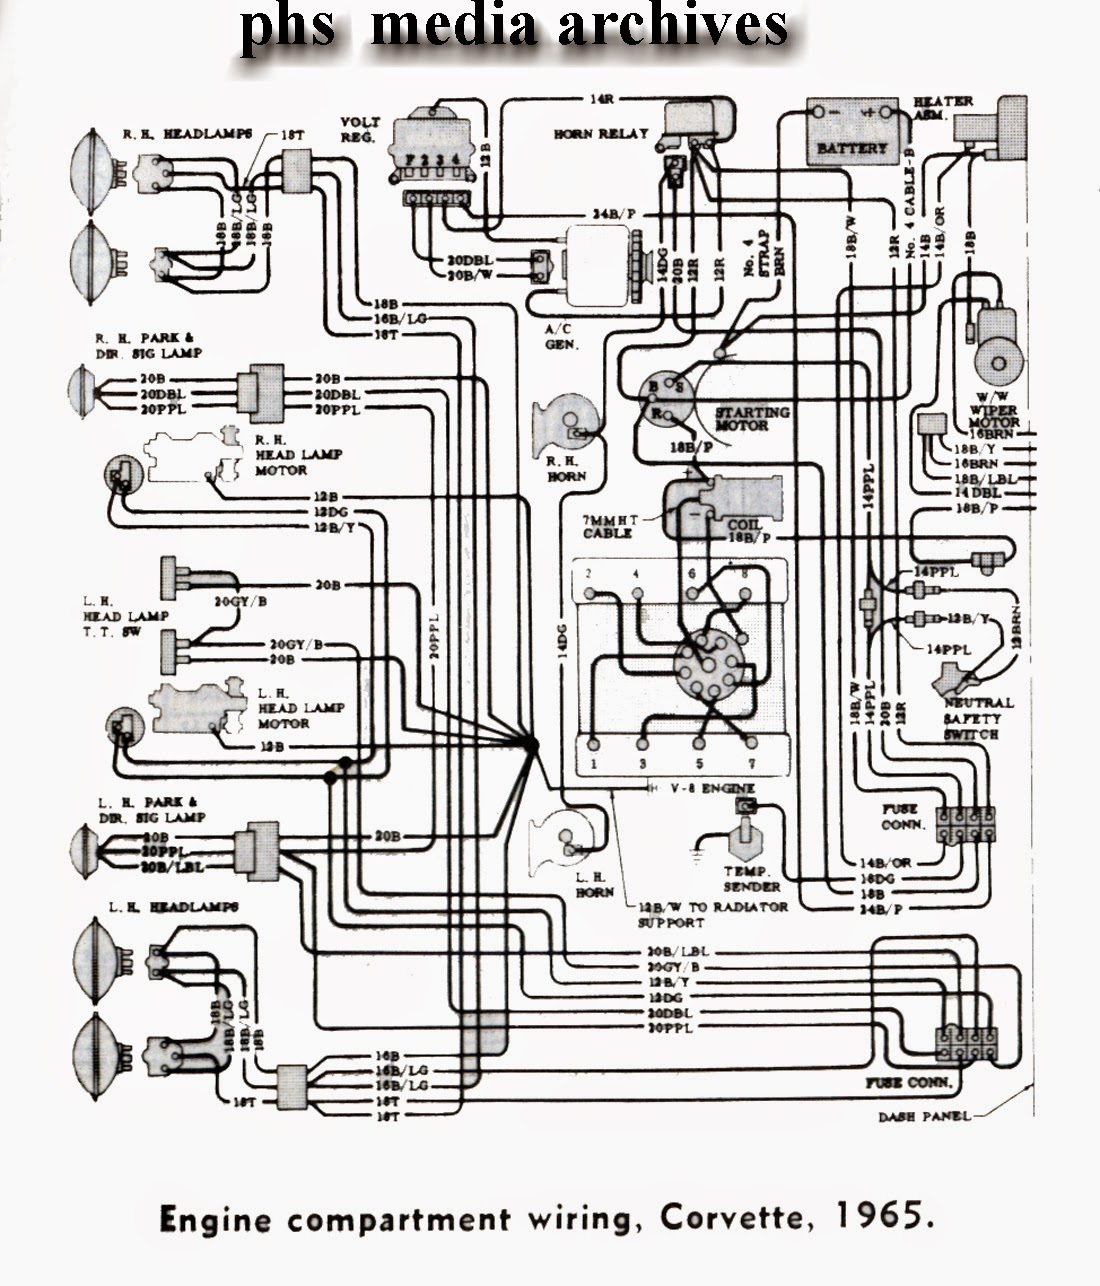 Engine Compartment Wiring Diagram 1966 - DATA WIRING DIAGRAM •